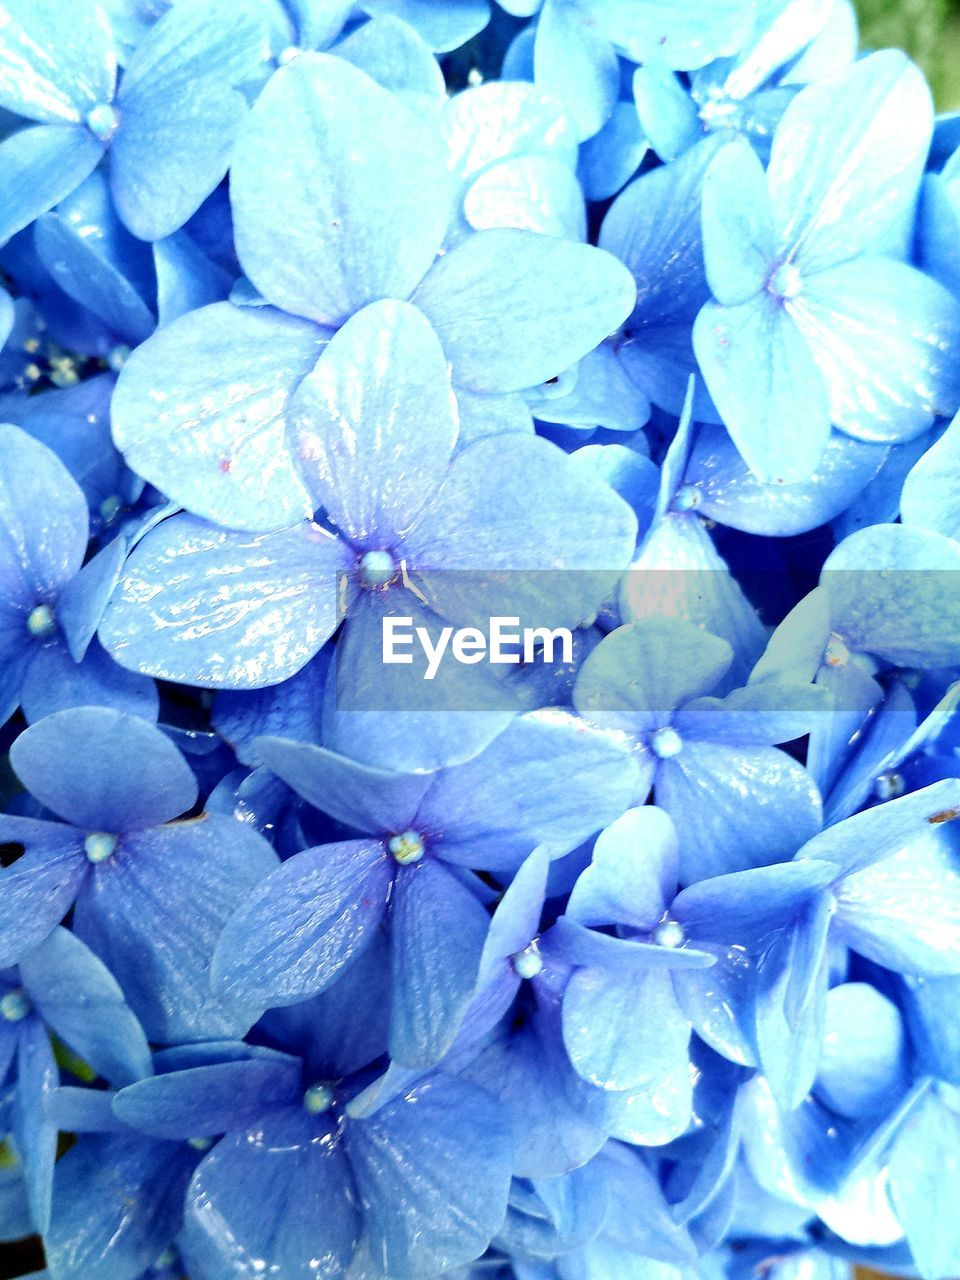 flower, petal, beauty in nature, nature, backgrounds, plant, full frame, growth, no people, fragility, freshness, outdoors, hydrangea, flower head, day, blue, blooming, close-up